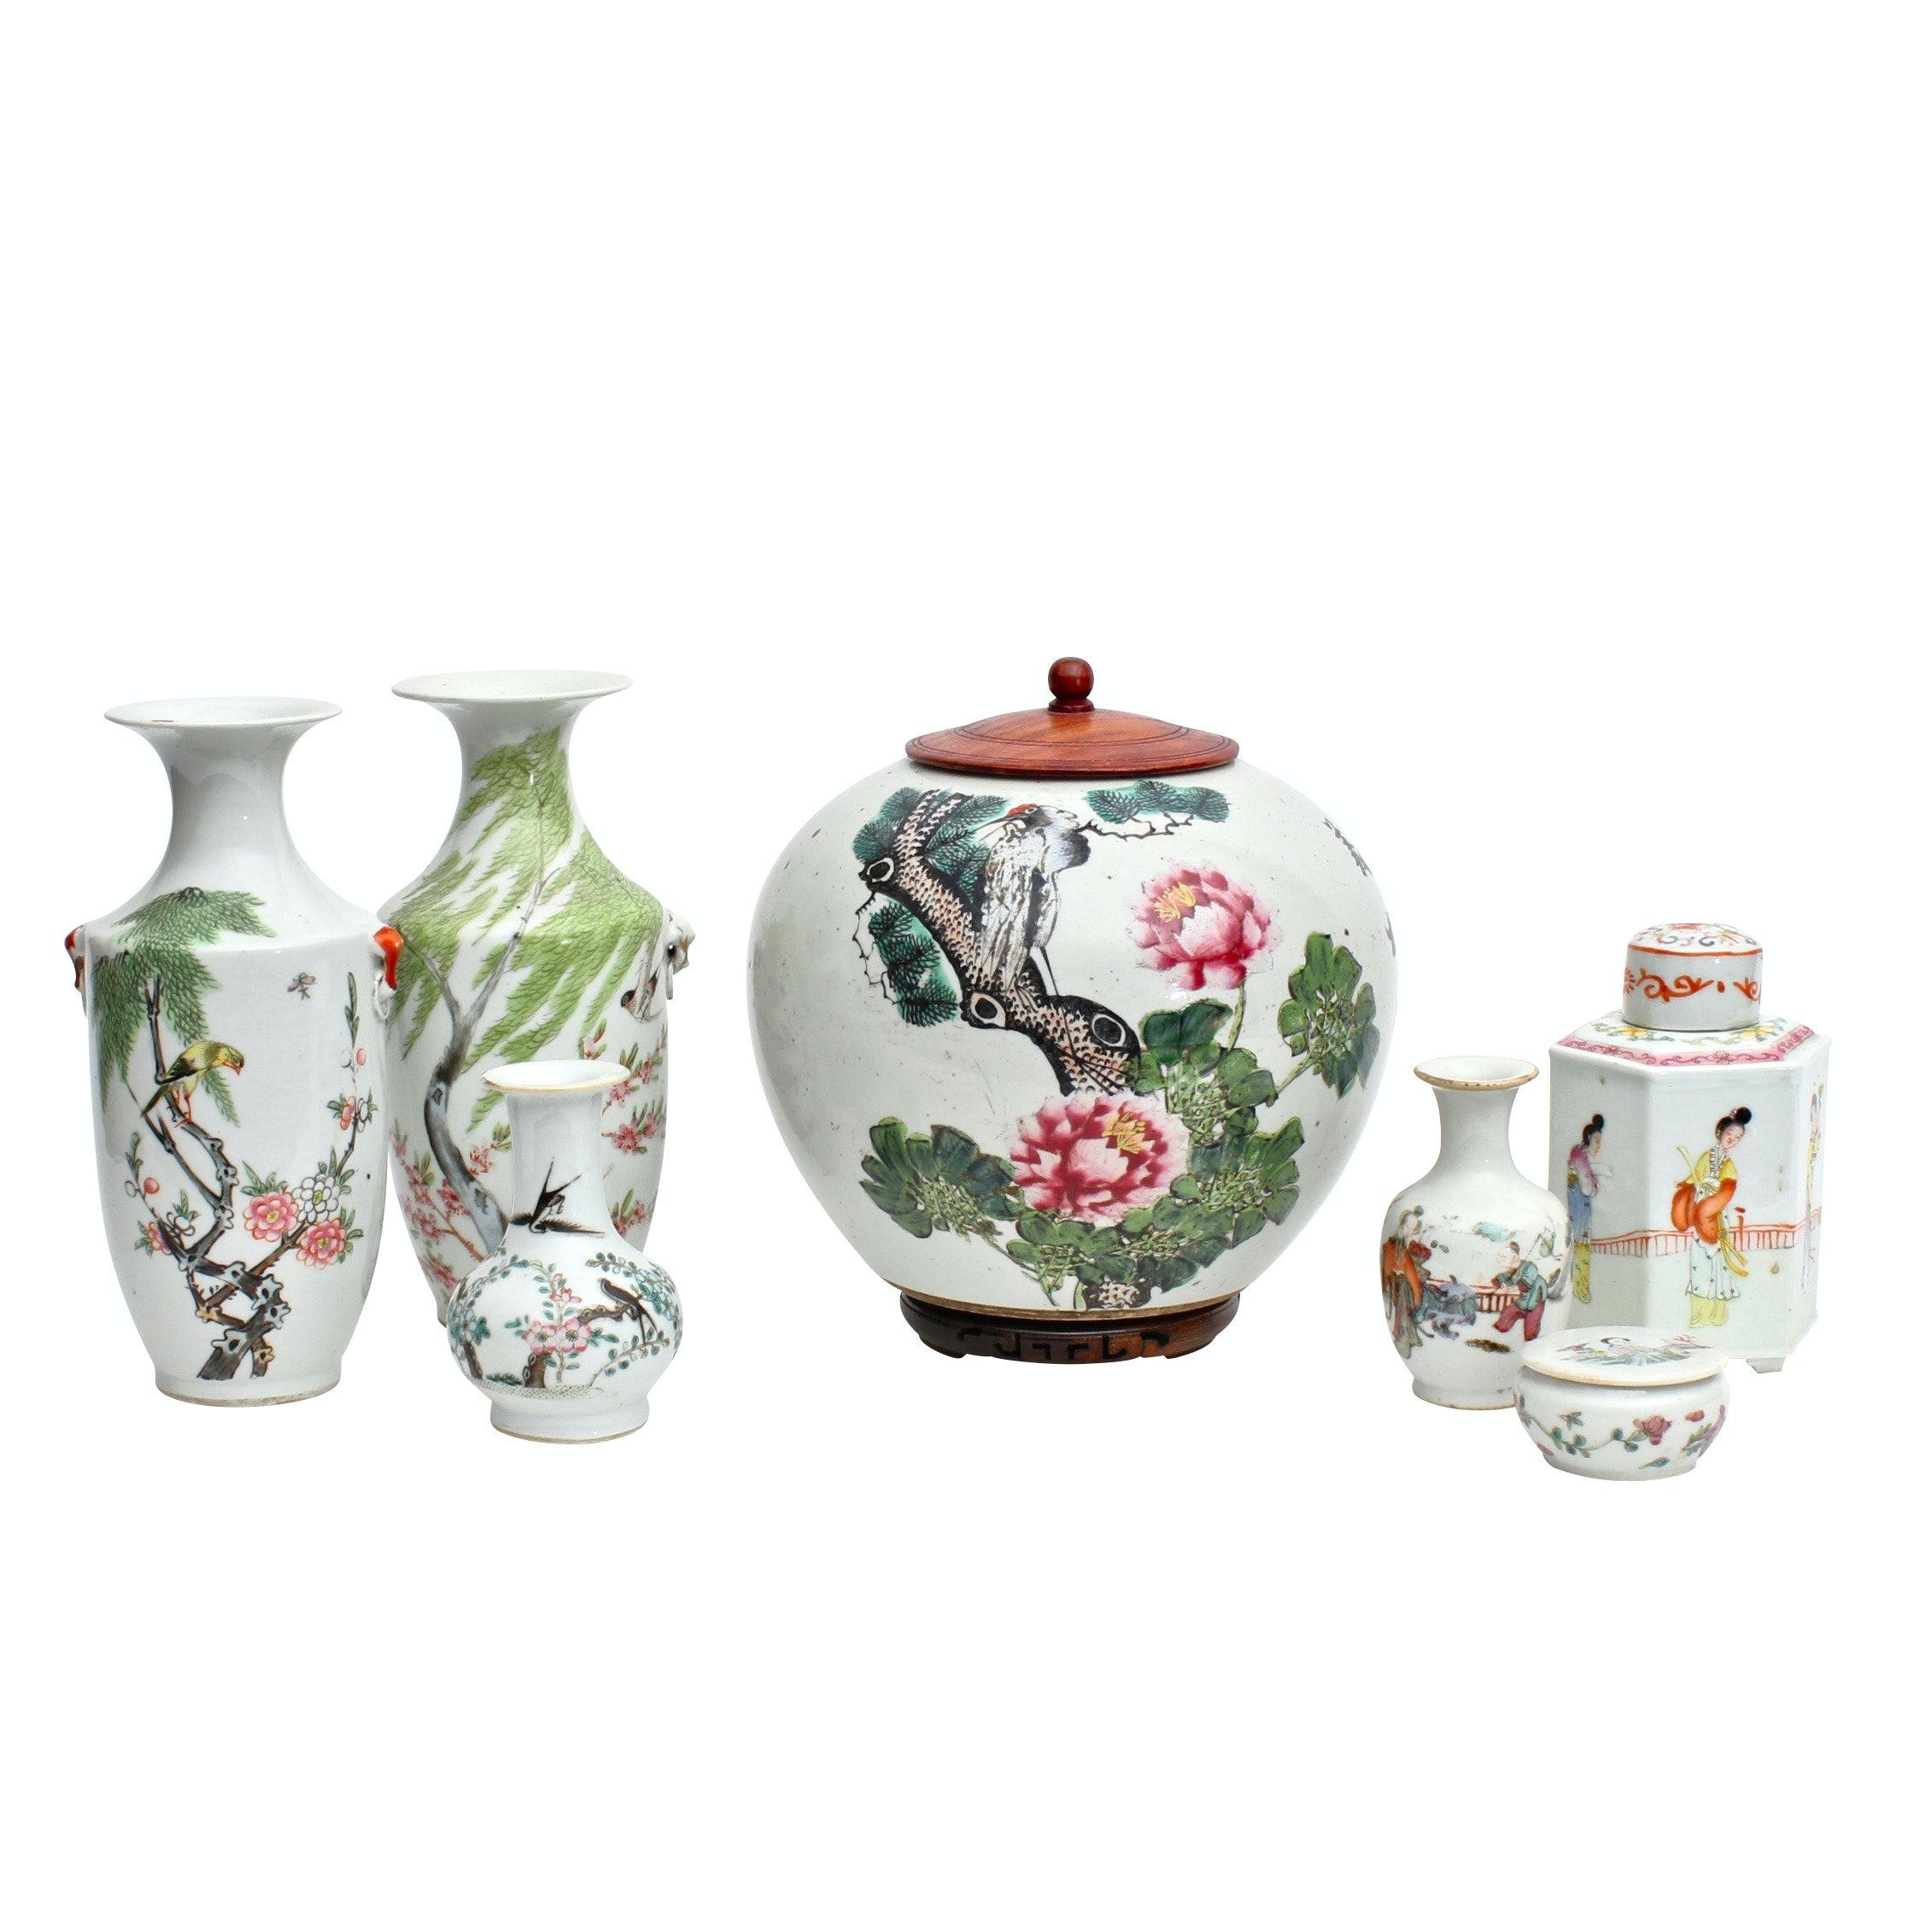 Chinese Porcelain Vases, Urns and Tableware, Republic Period